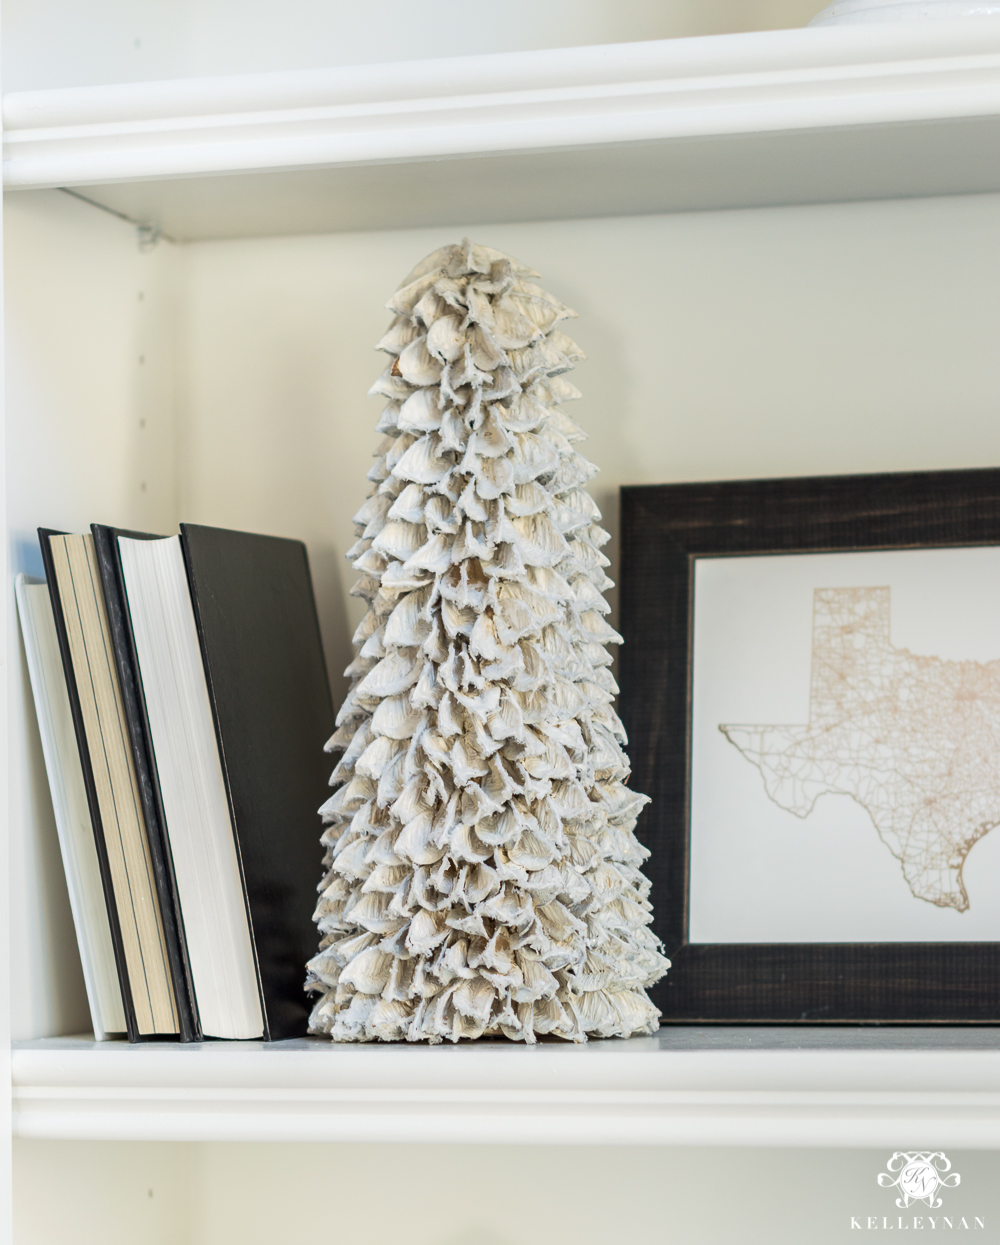 Shelf styling ideas for the holidays